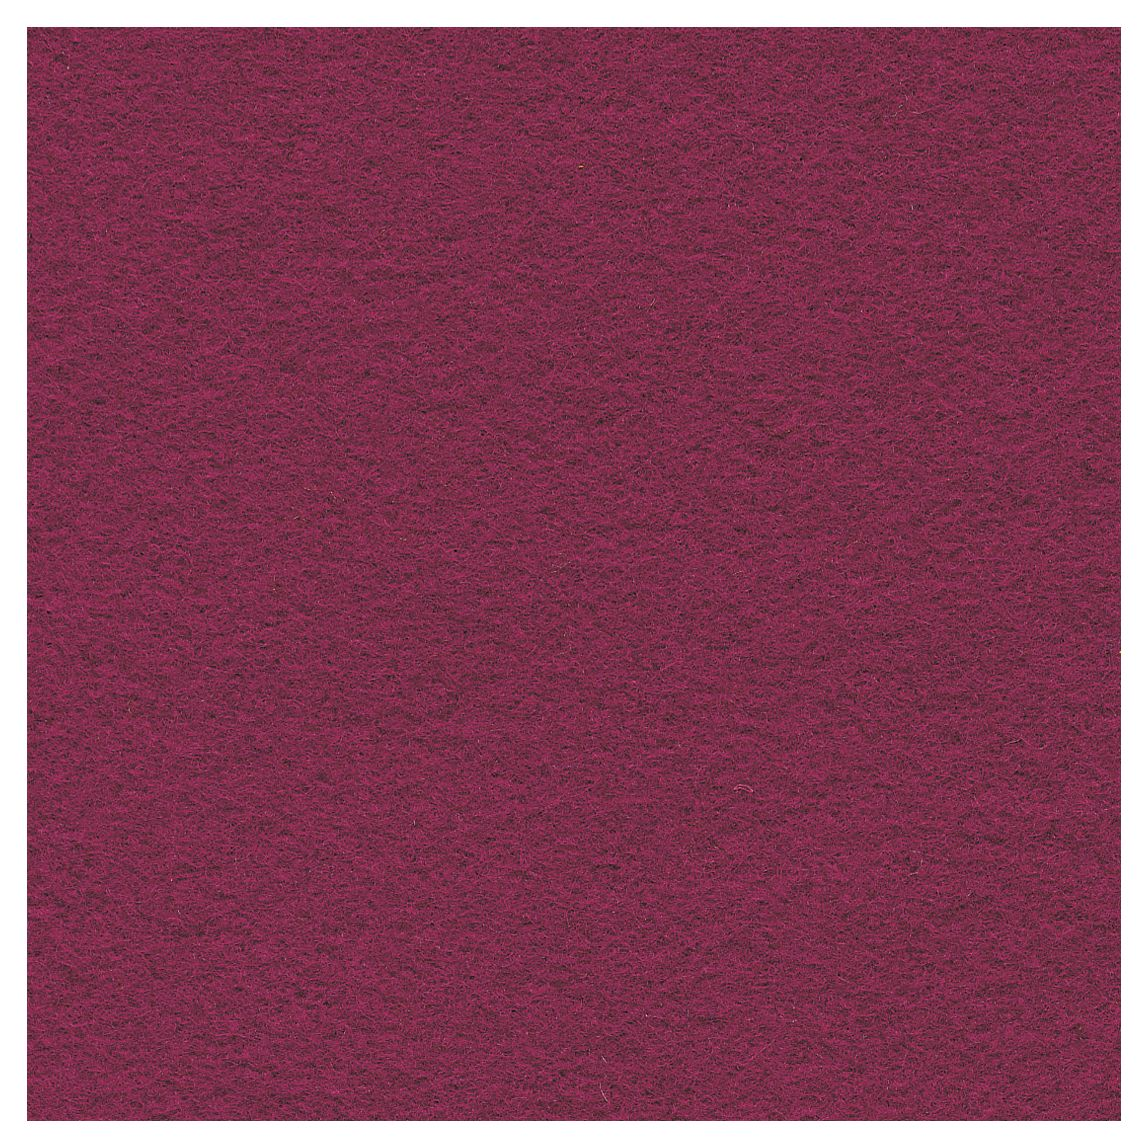 Wooly Framboise Swatch